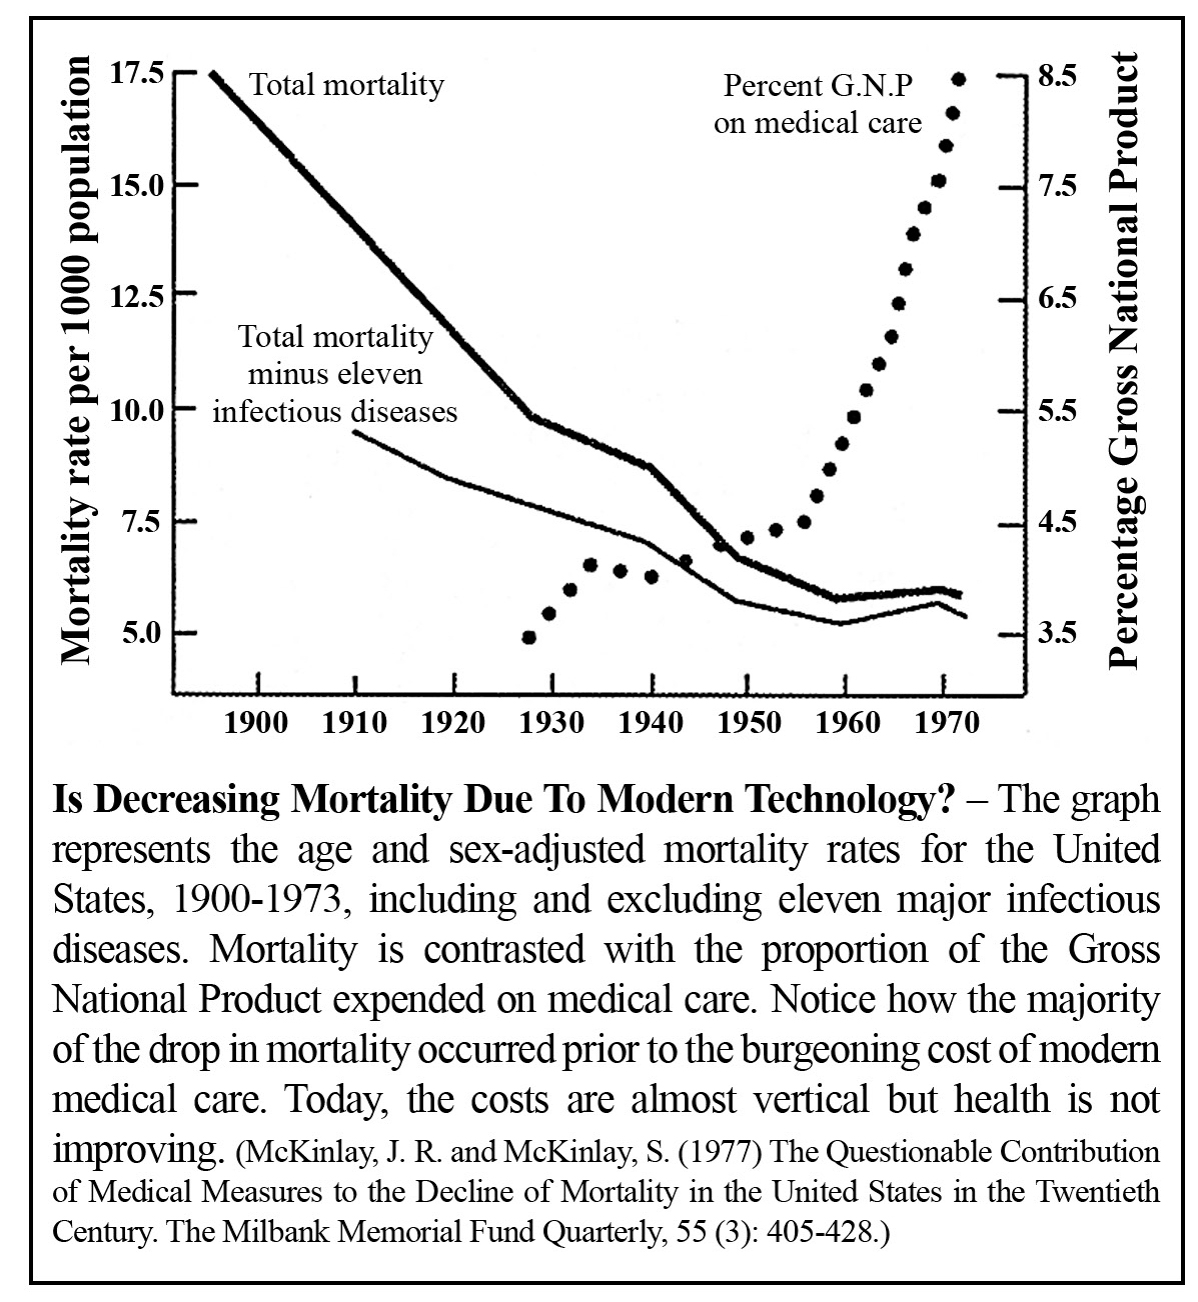 Decreasing Mortality